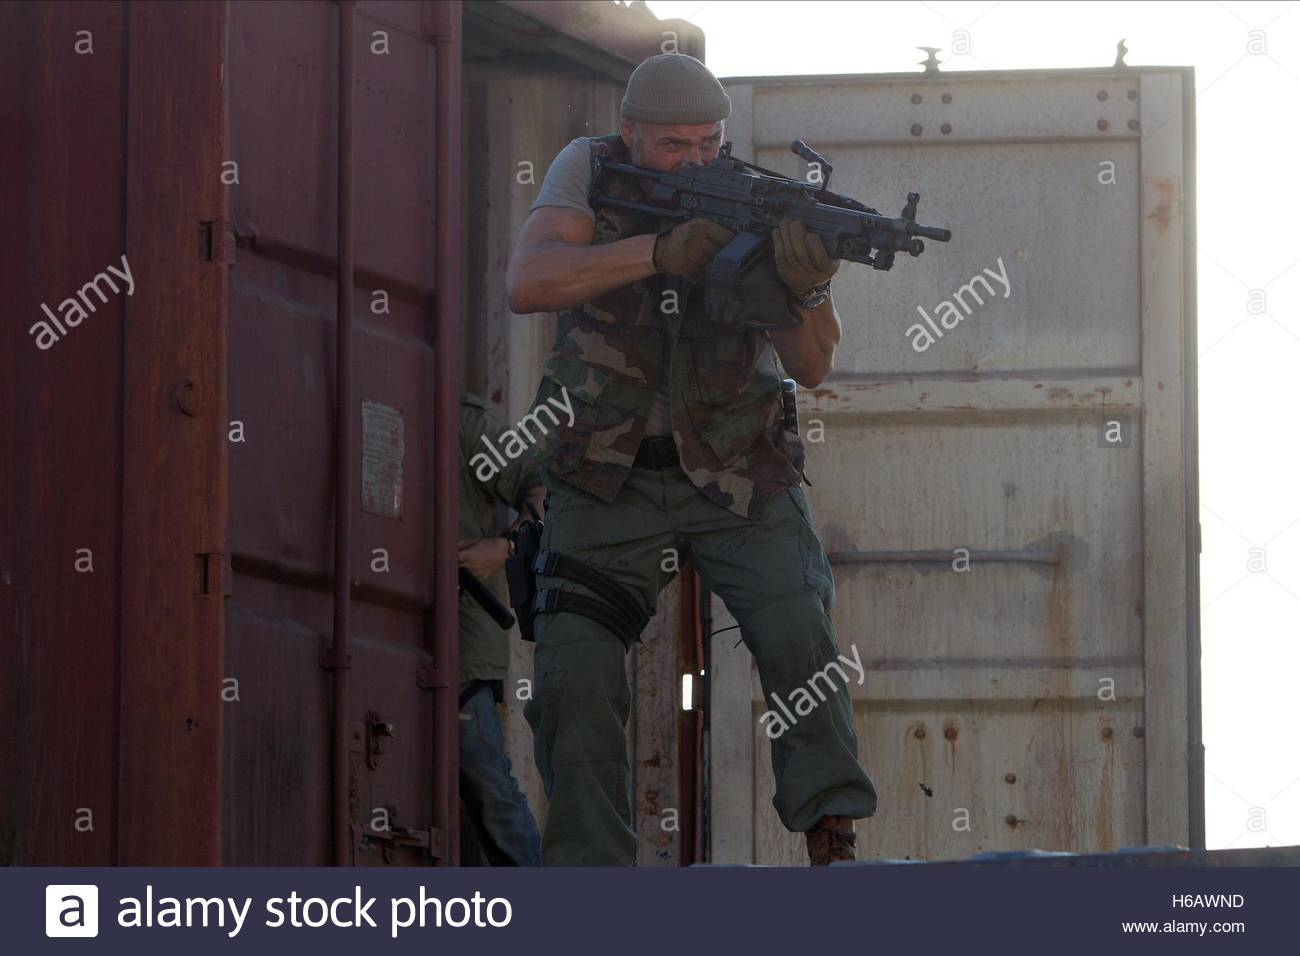 RANDY COUTURE THE EXPENDABLES 3 (2014) - Stock Image